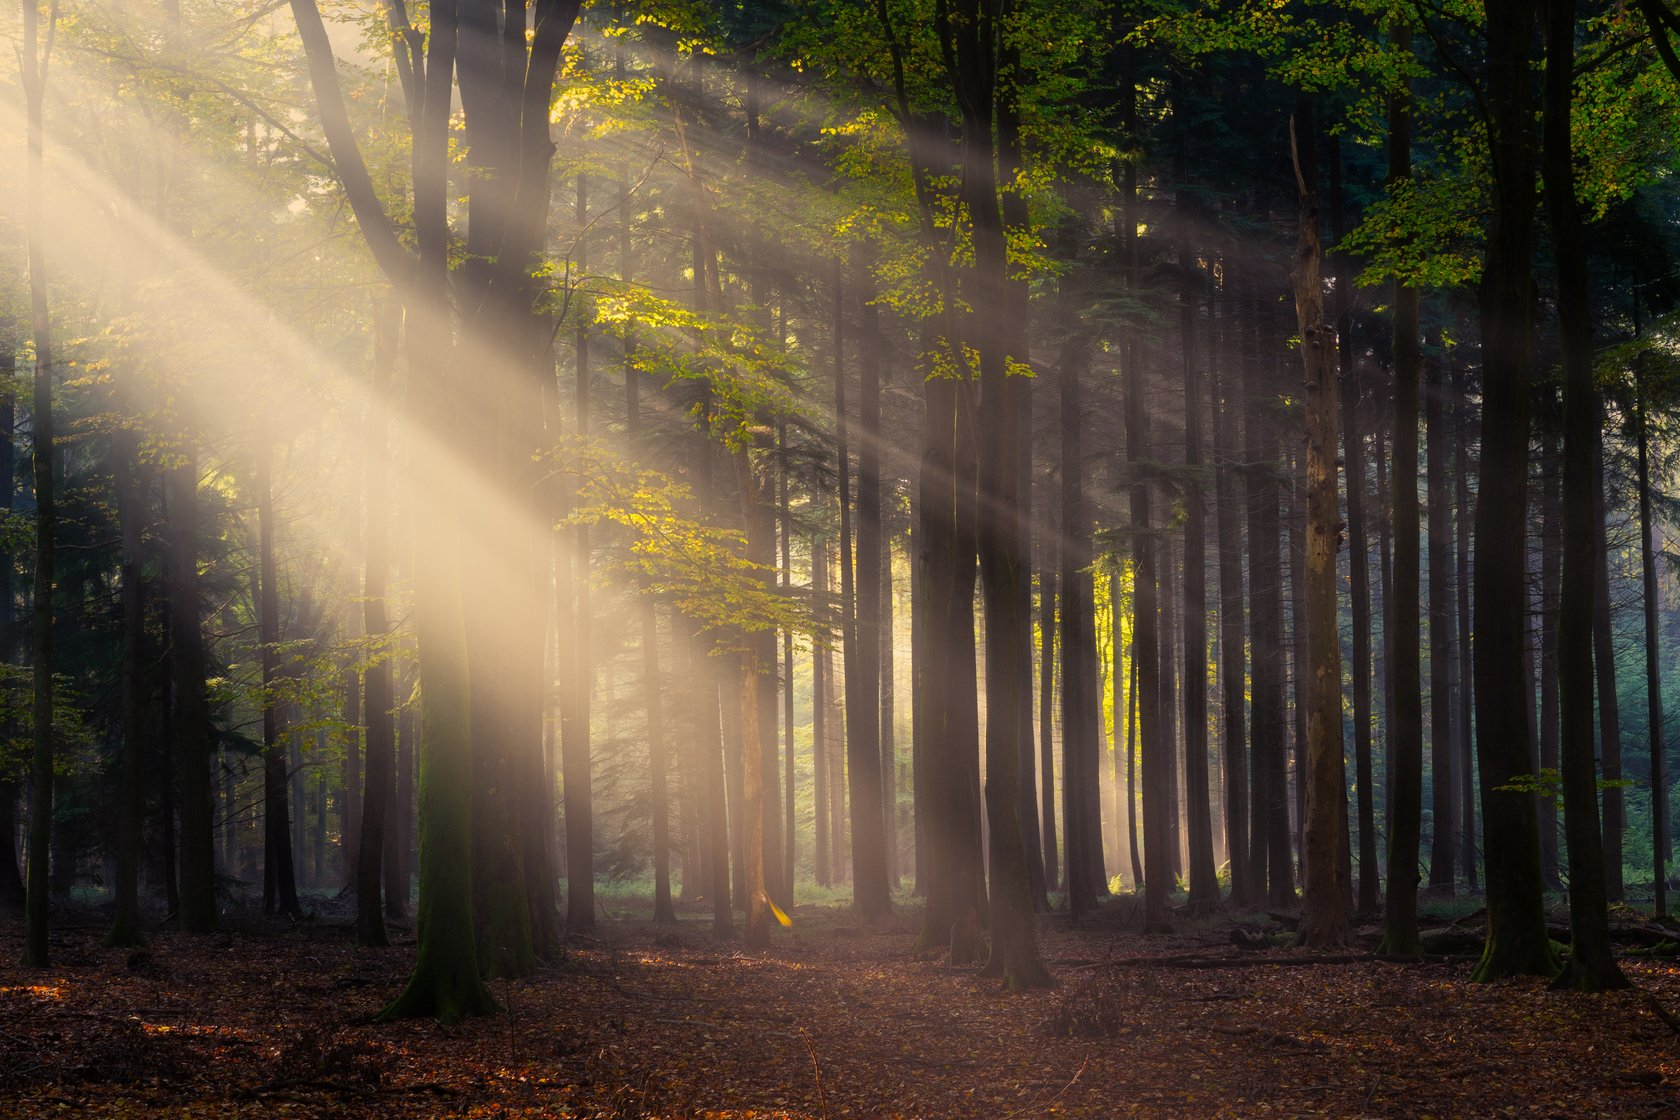 Magical Forests by Albert Dros. How to shoot and edit forest images Image2